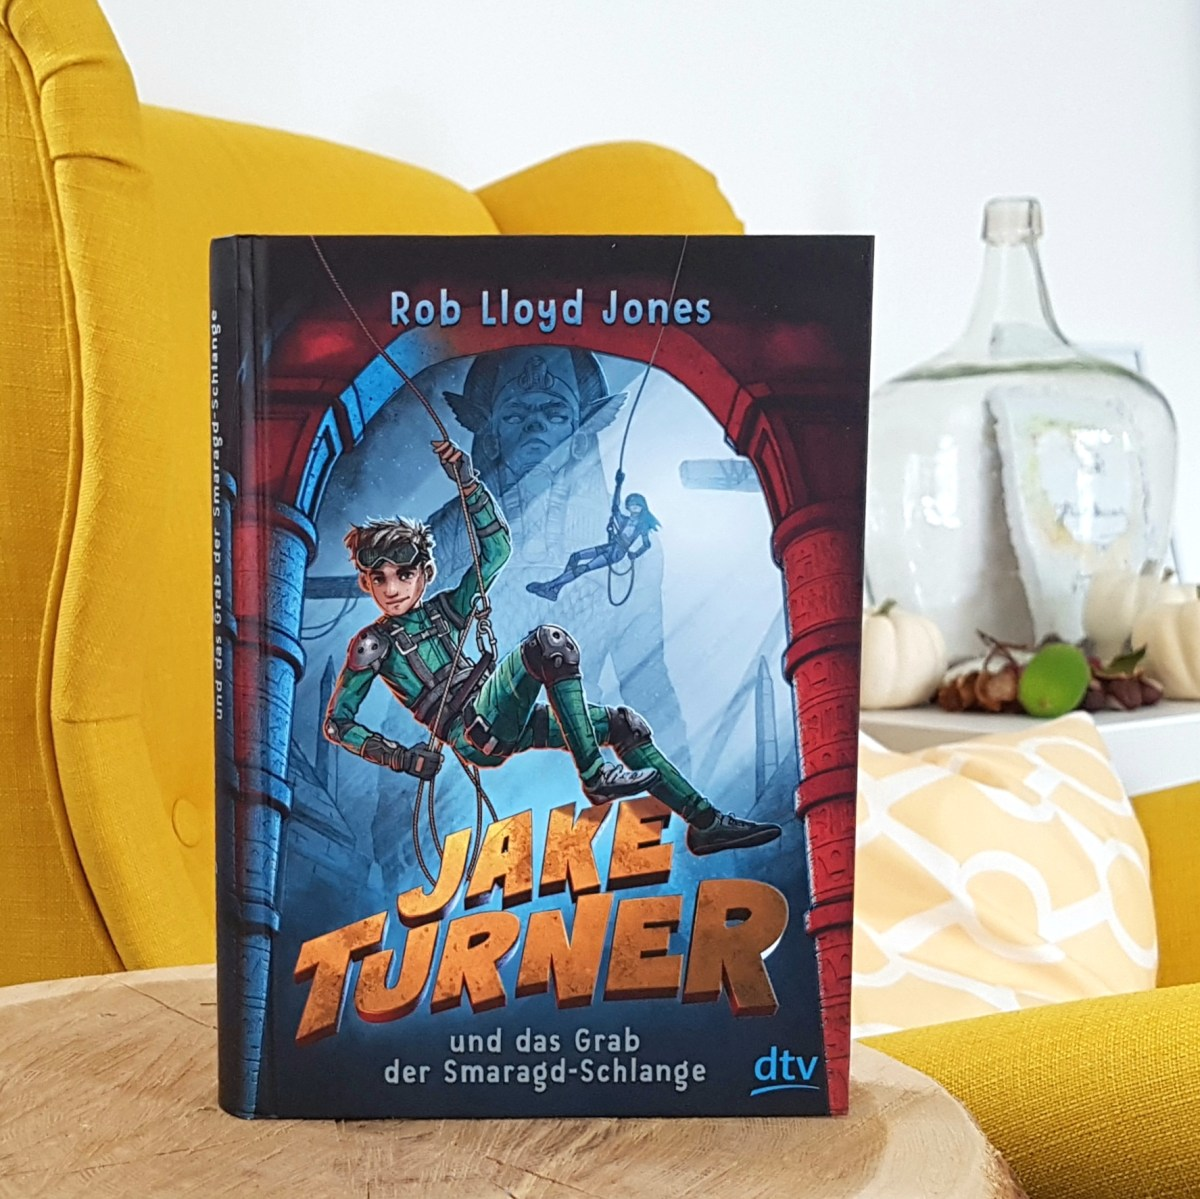 Spy Kids meets Indiana Jones - Jake Turner und das Grab der Smaragdschlange von Rob Lloyd Jones (Rezension)